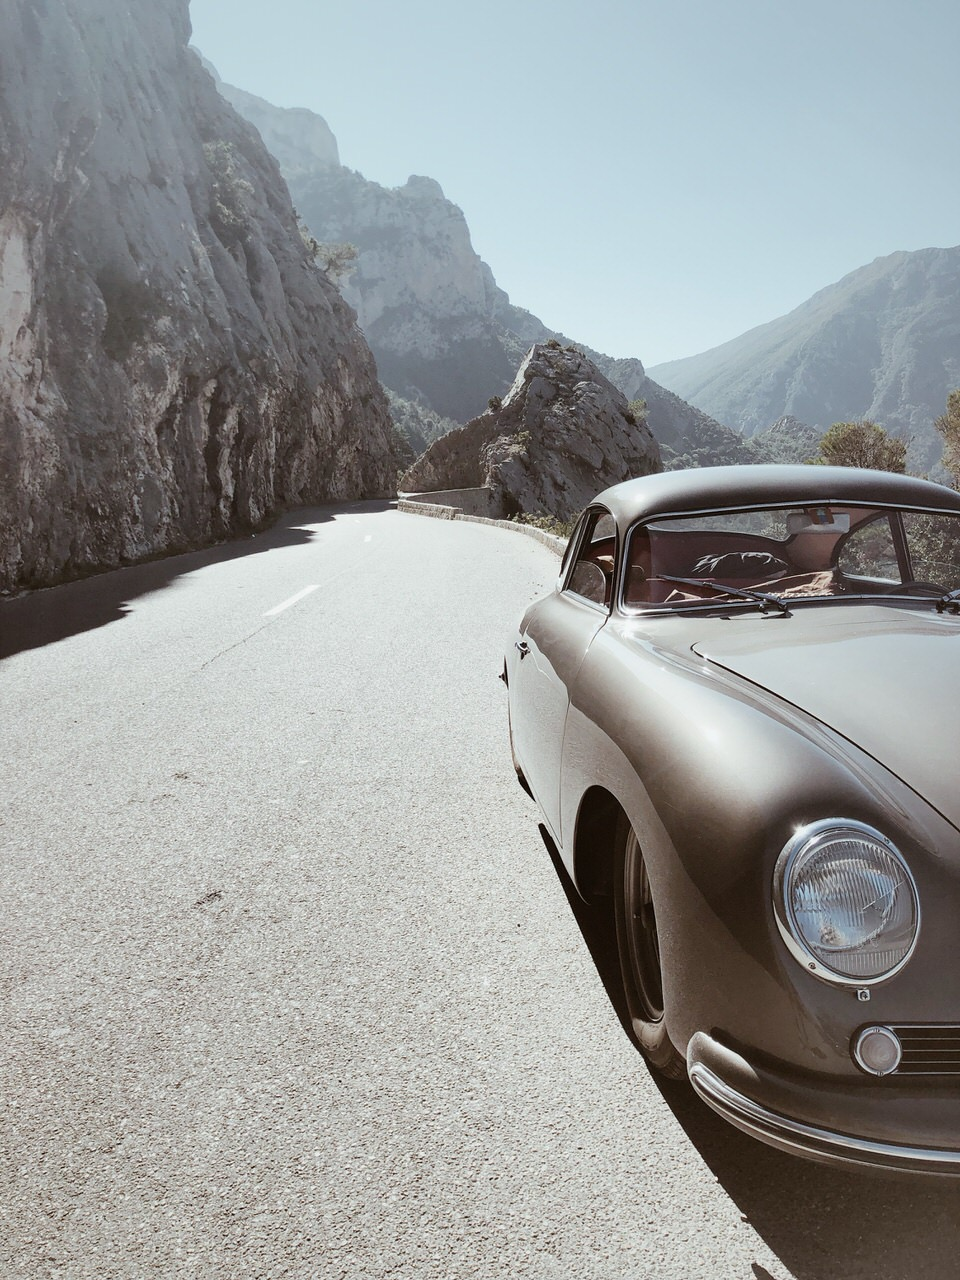 Route des Grandes Alpes with a 64 year old Porsche 356